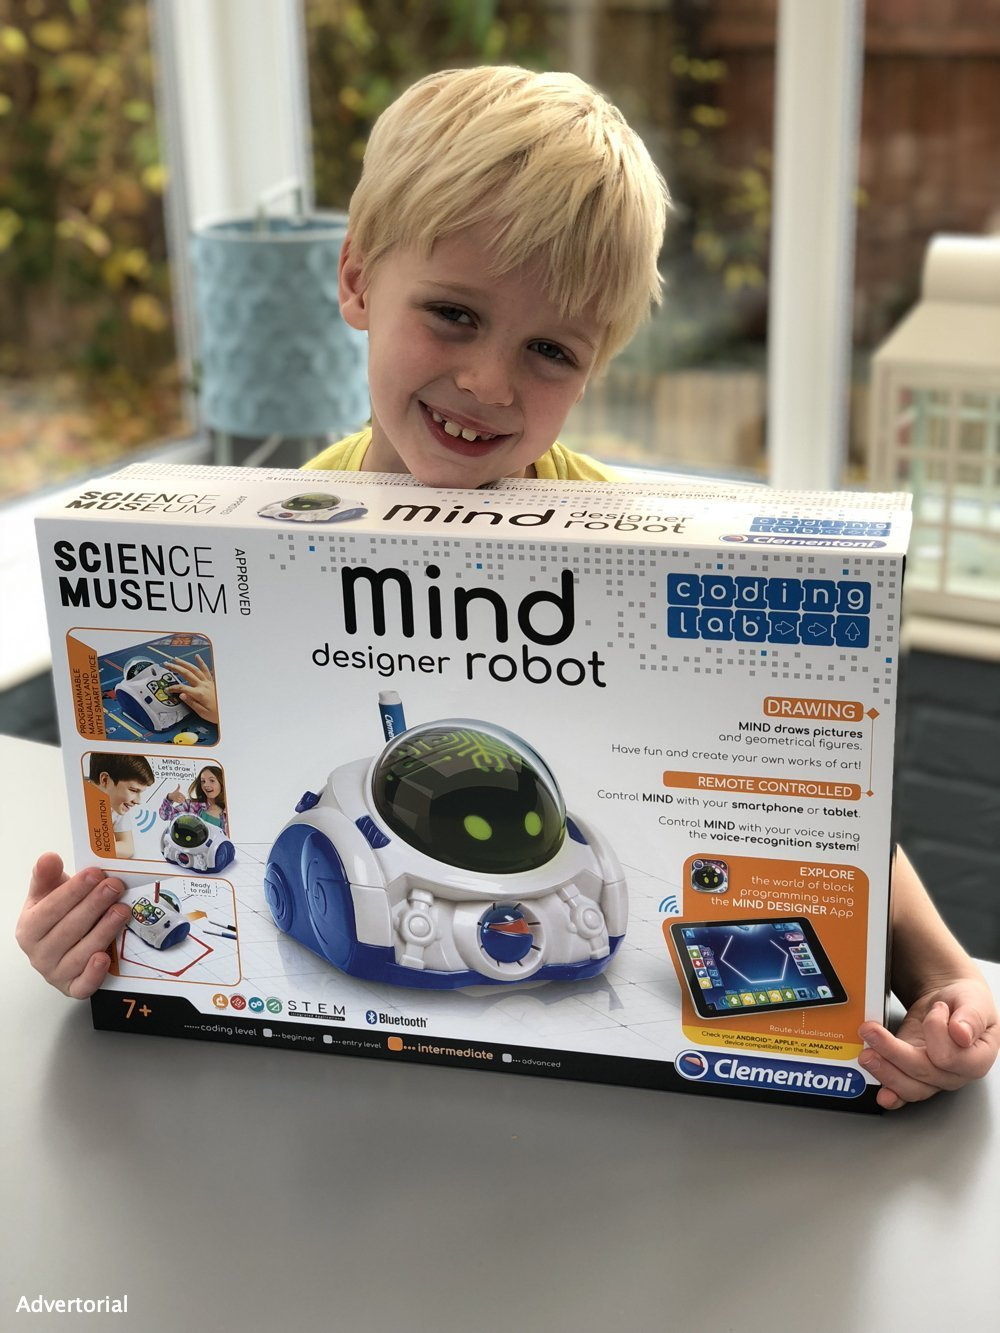 boy holding the Mind Designer Robot box